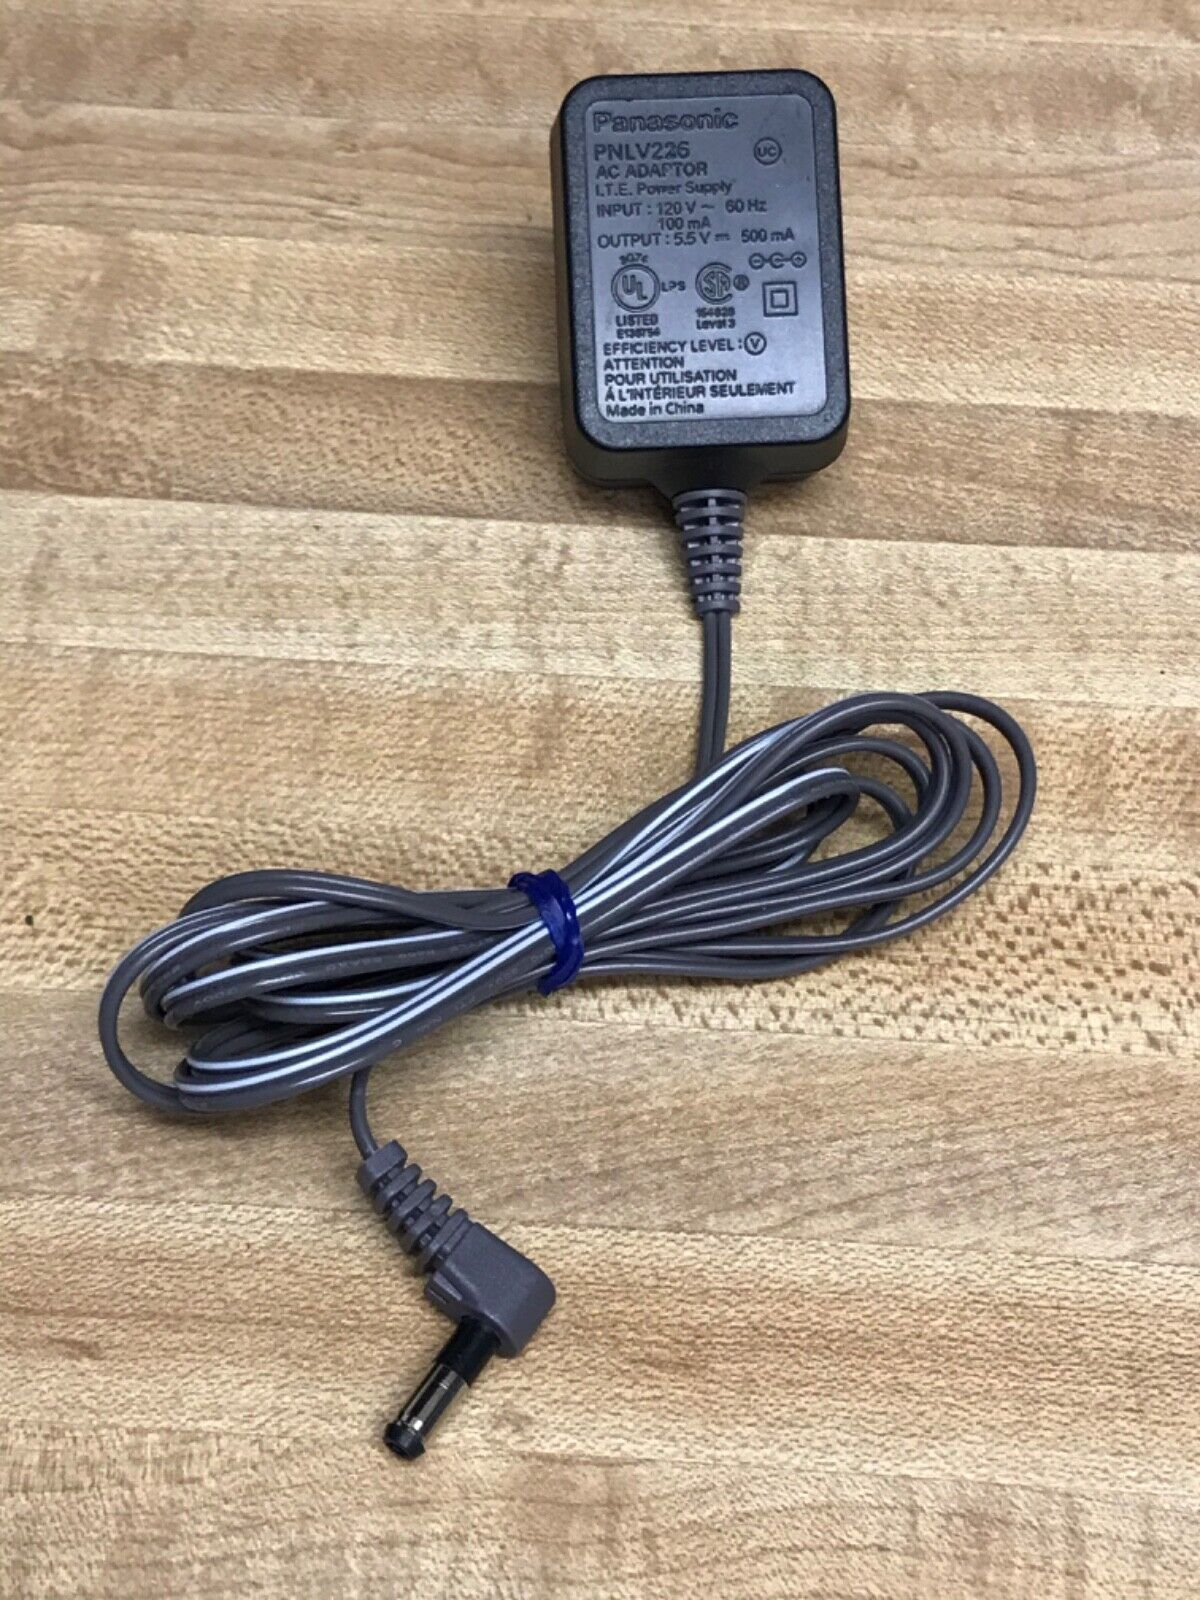 AC Power Supply Adapter Cord Compatible with Panasonic BL-VT164 E BL-VT164W P Network Camera 5/Feet,/with/LED/Indicator